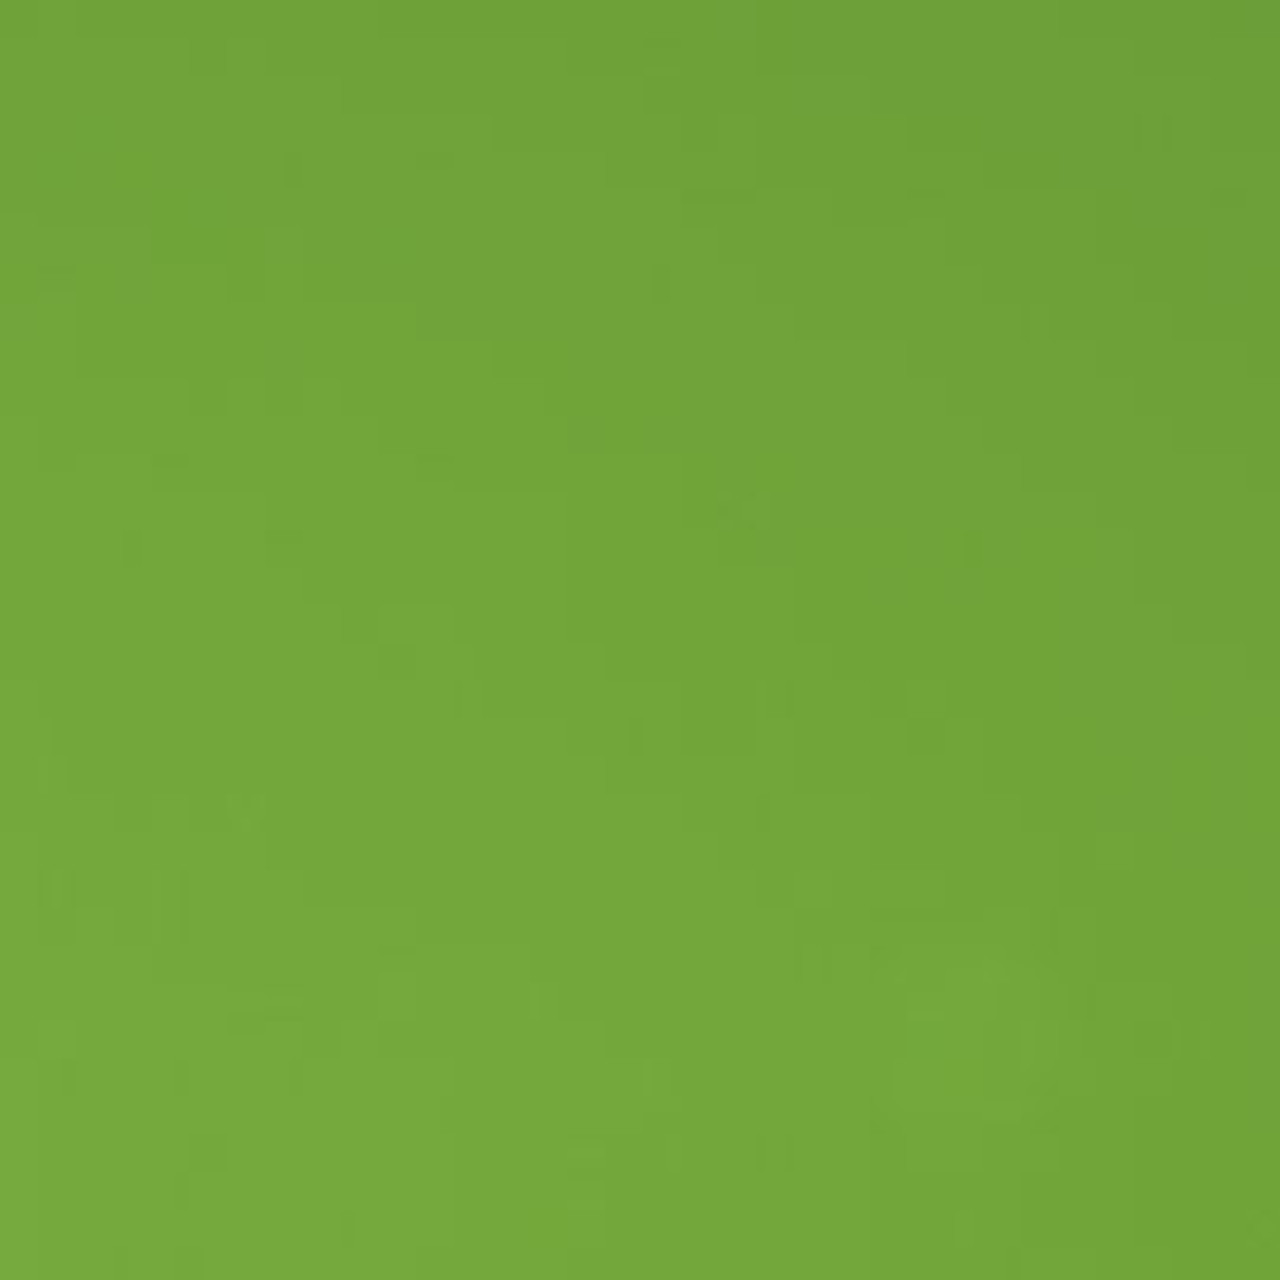 """Seabrook Lime #147 Vinyl 54"""" - Sold by the CONTINUOUS YARD!"""